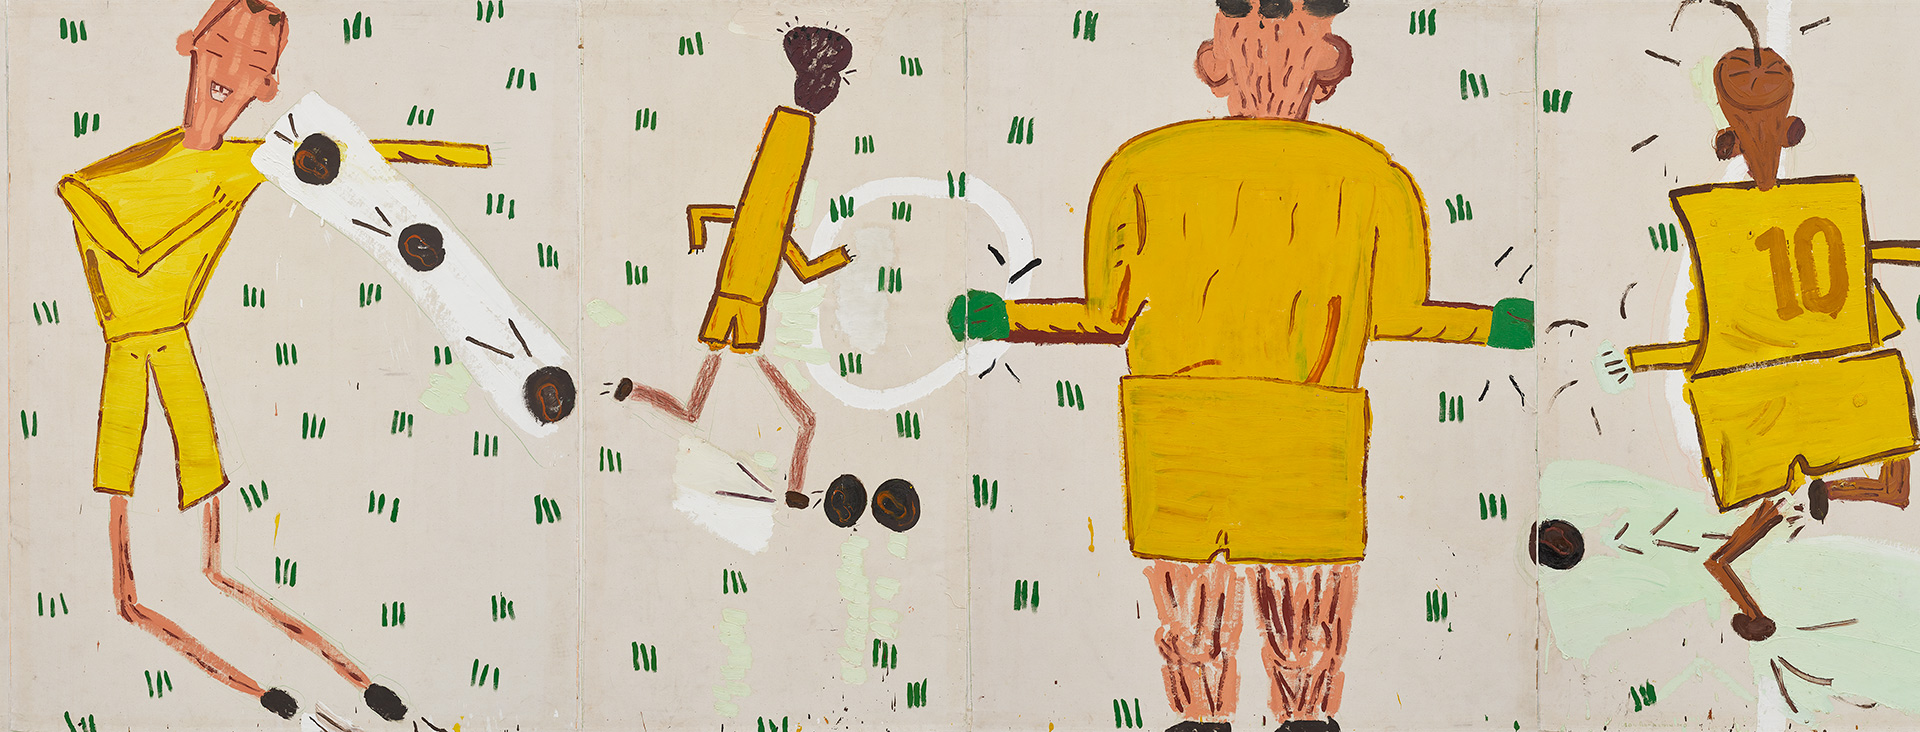 A detail from a painting by Rose Wylie, titled Yellow Strip, dated 2006.